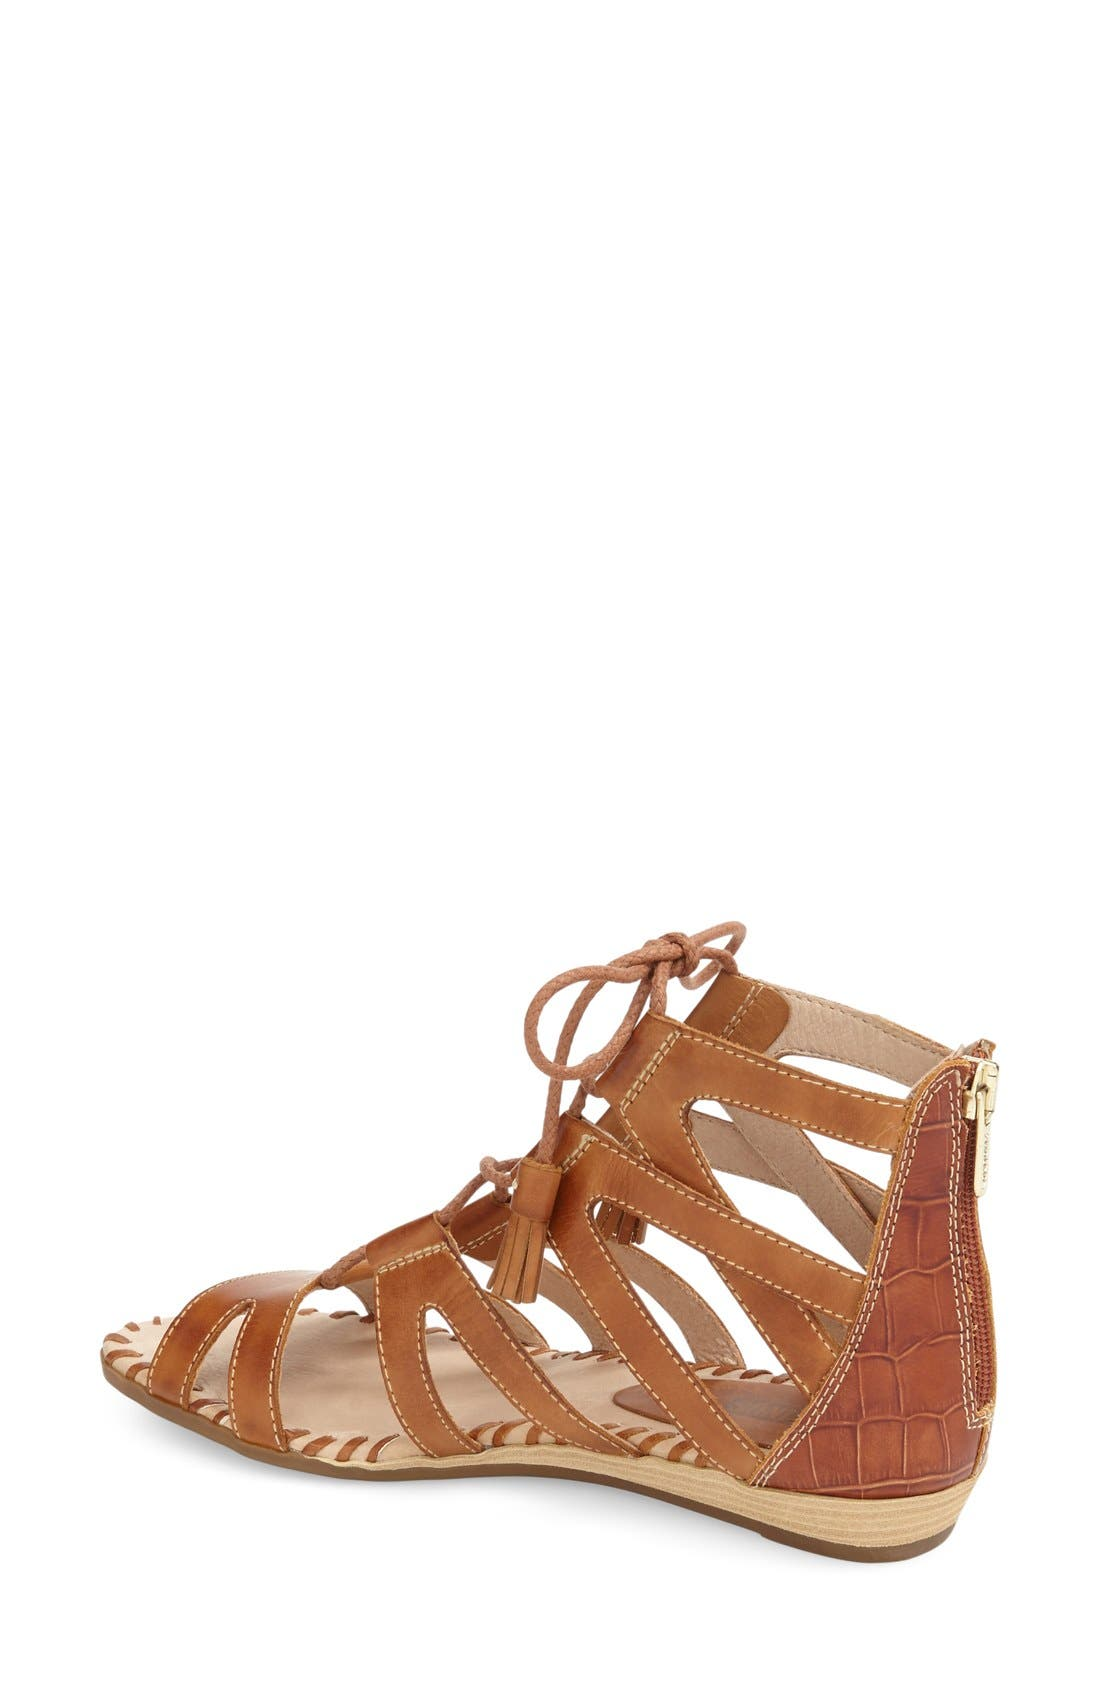 'Alcudia' Lace-Up Sandal,                             Alternate thumbnail 2, color,                             Brandy/ Brandy Leather